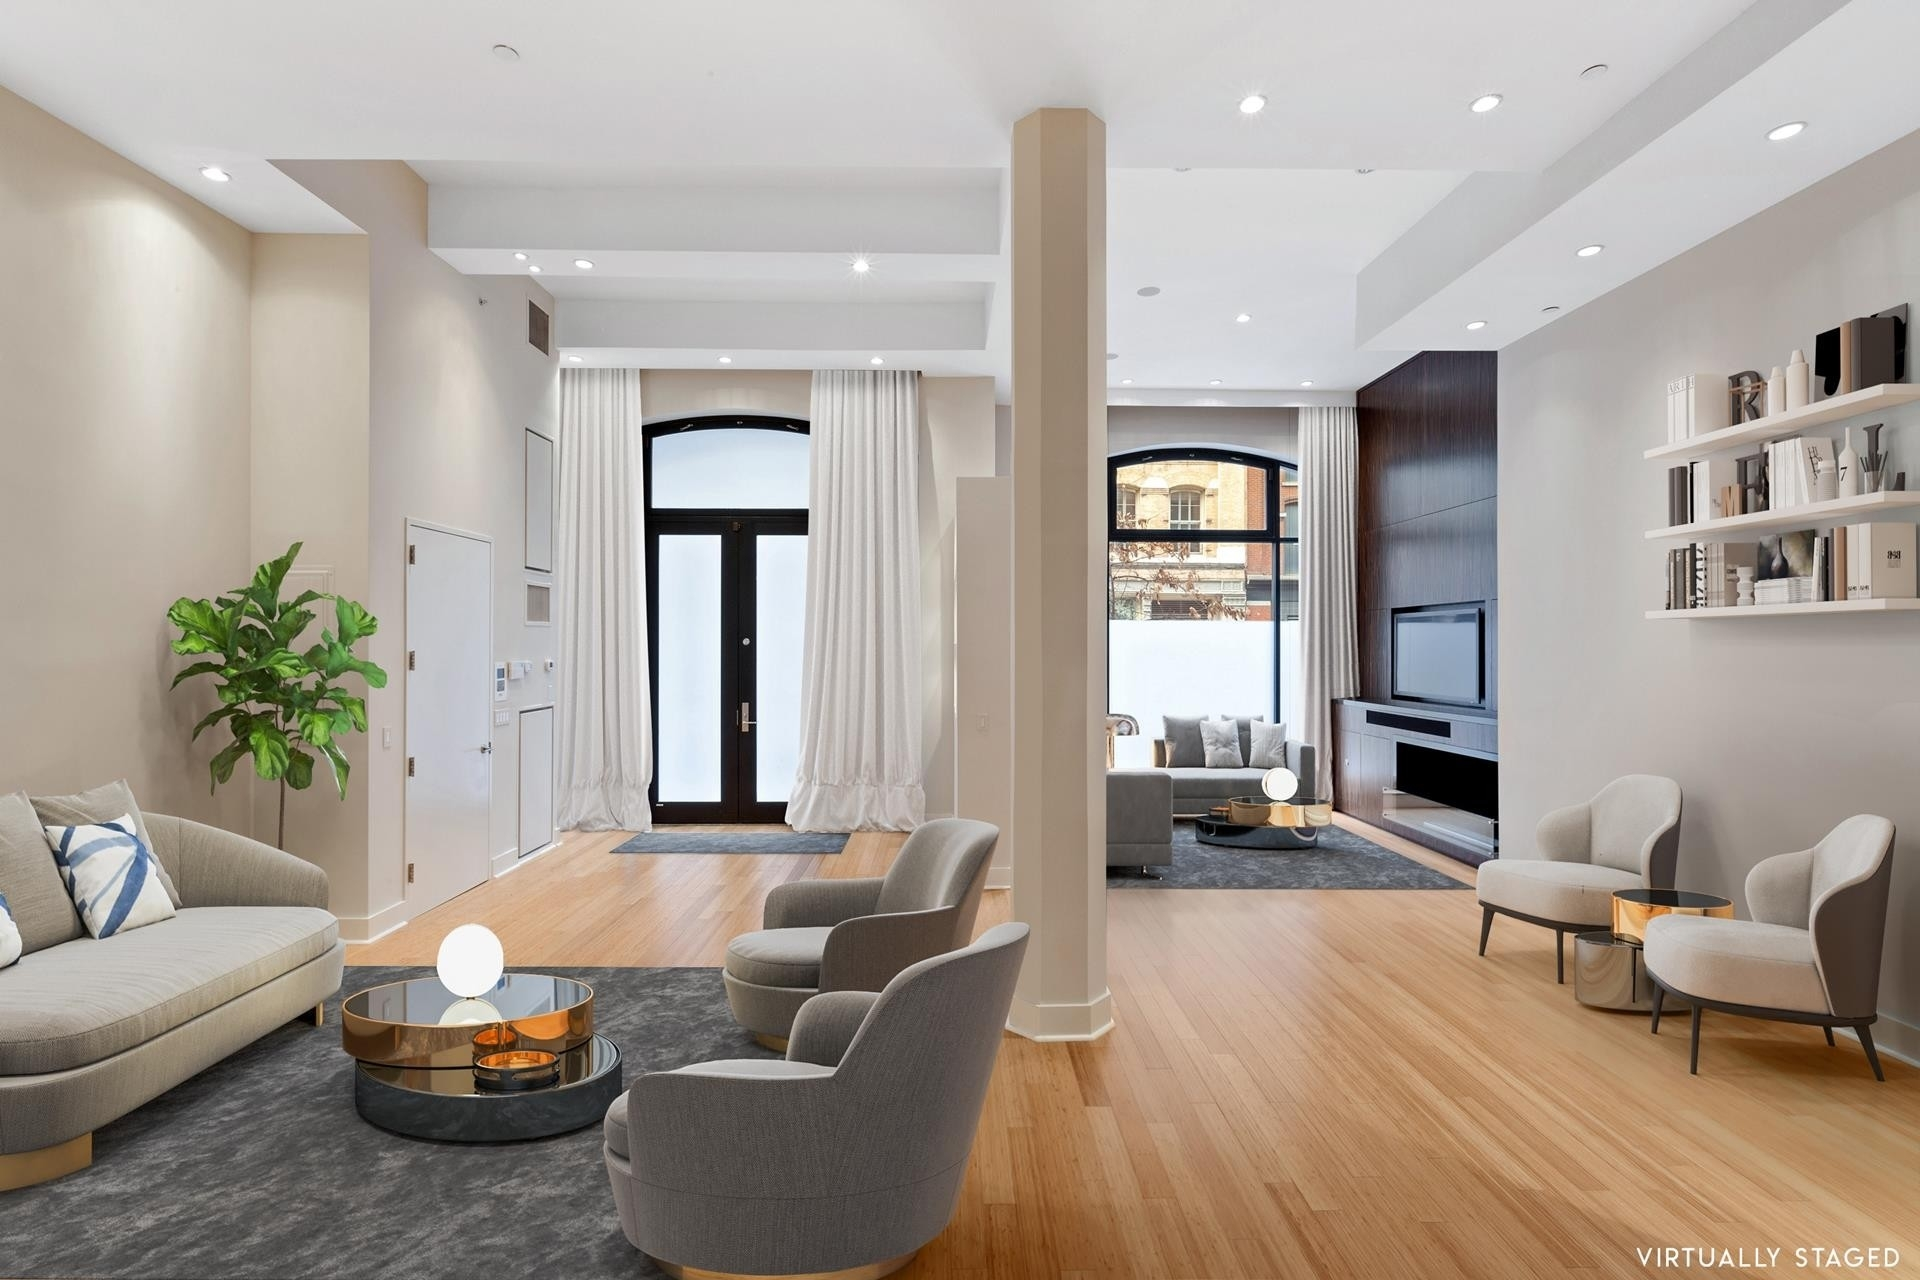 Property at TRIBECA SUMMIT, 415 Greenwich St, THB TriBeCa, New York, NY 10013